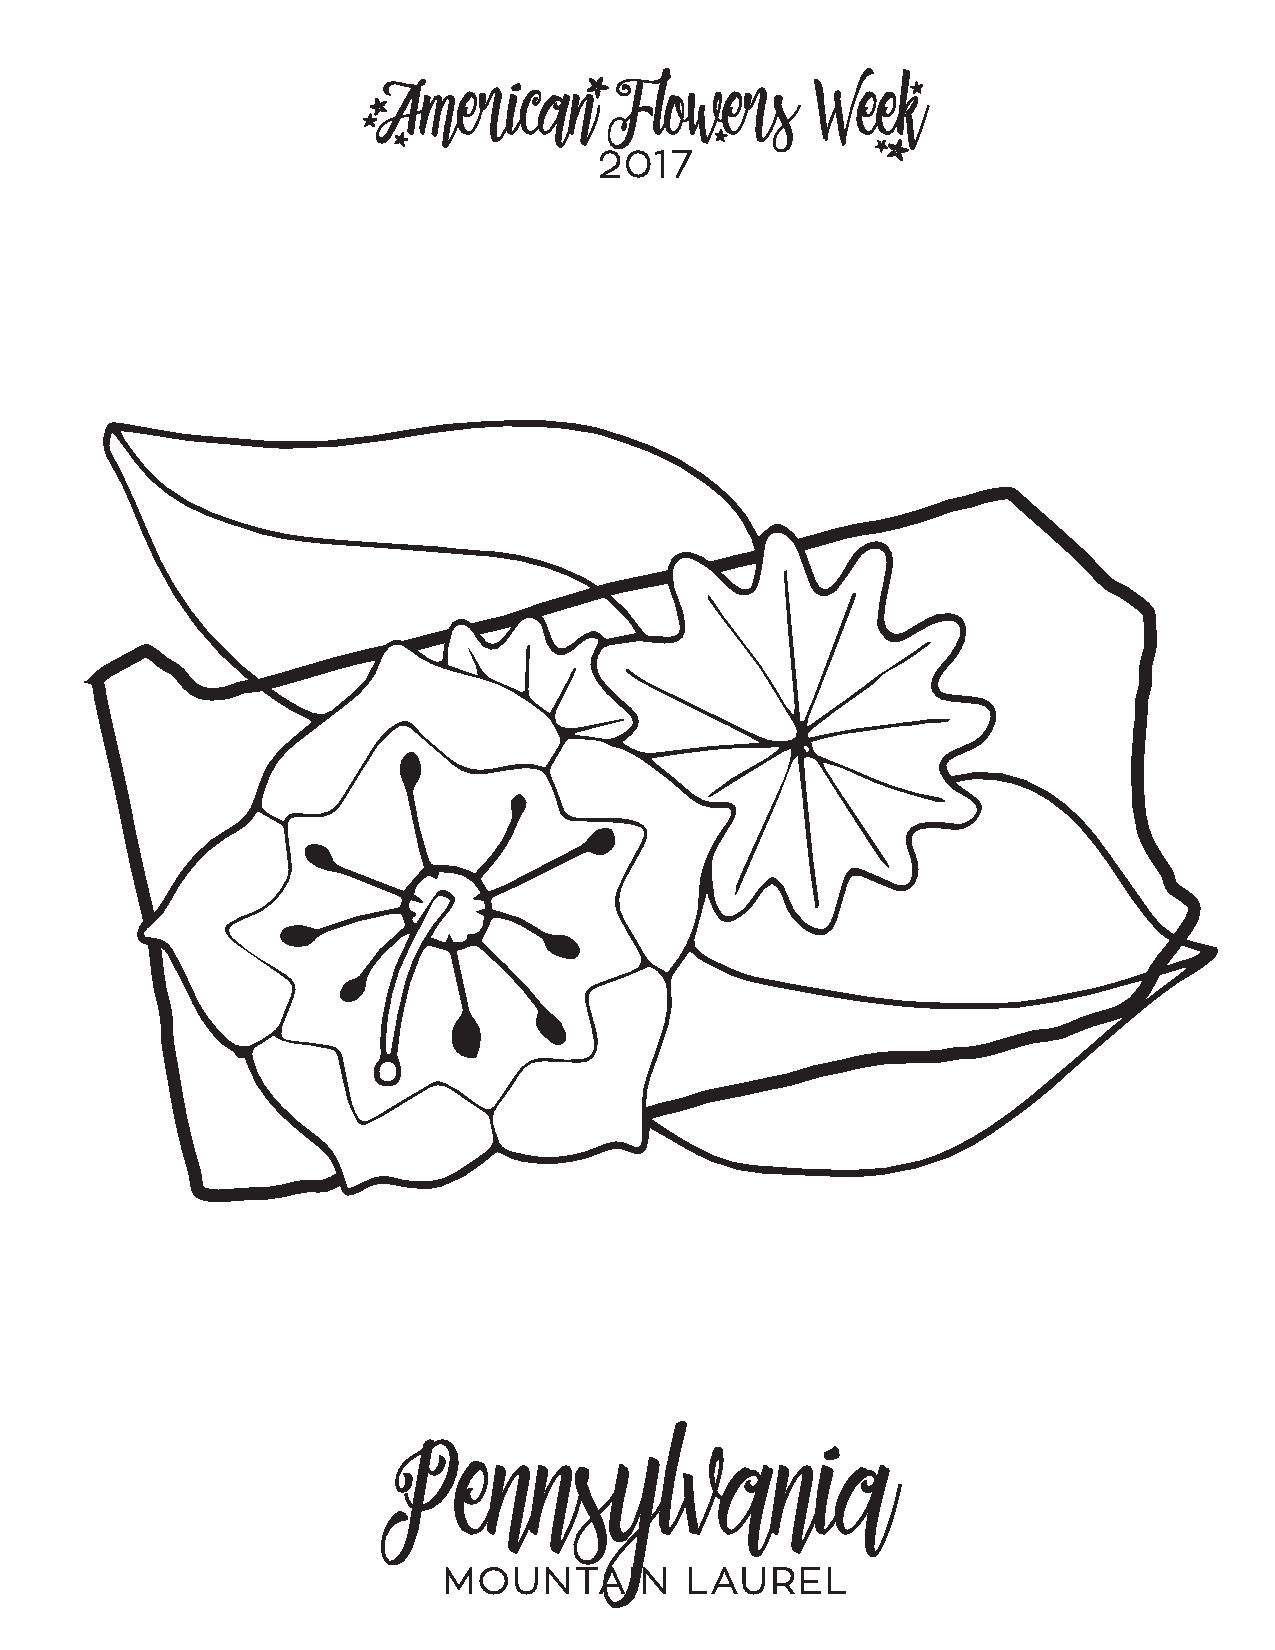 50 State Flowers — Free Coloring Pages